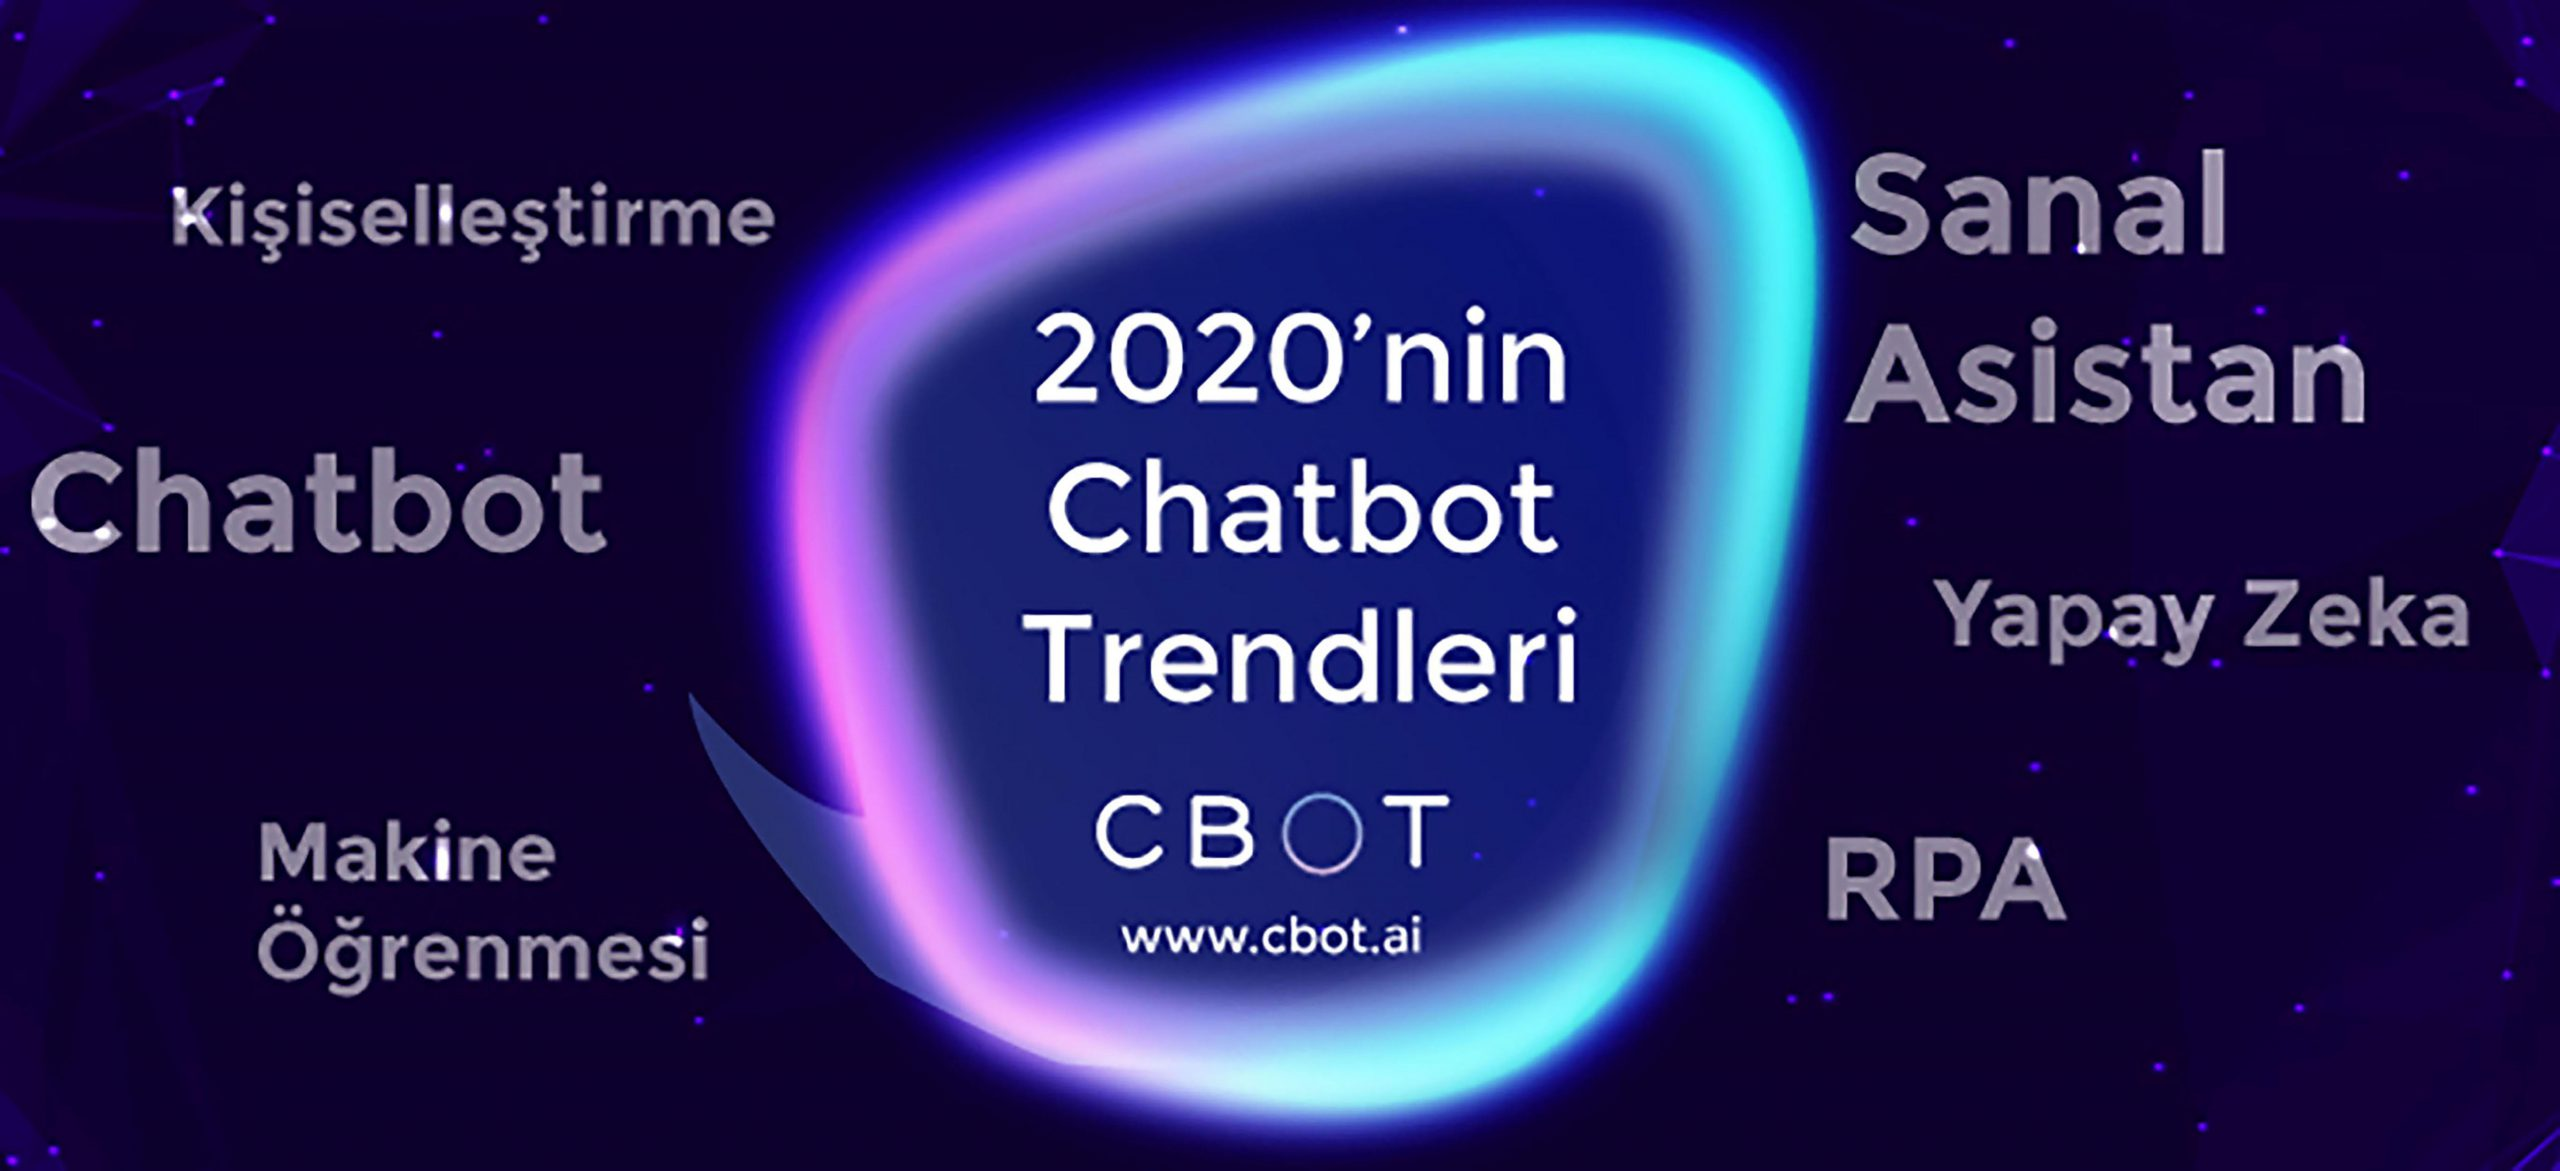 chatbot trends